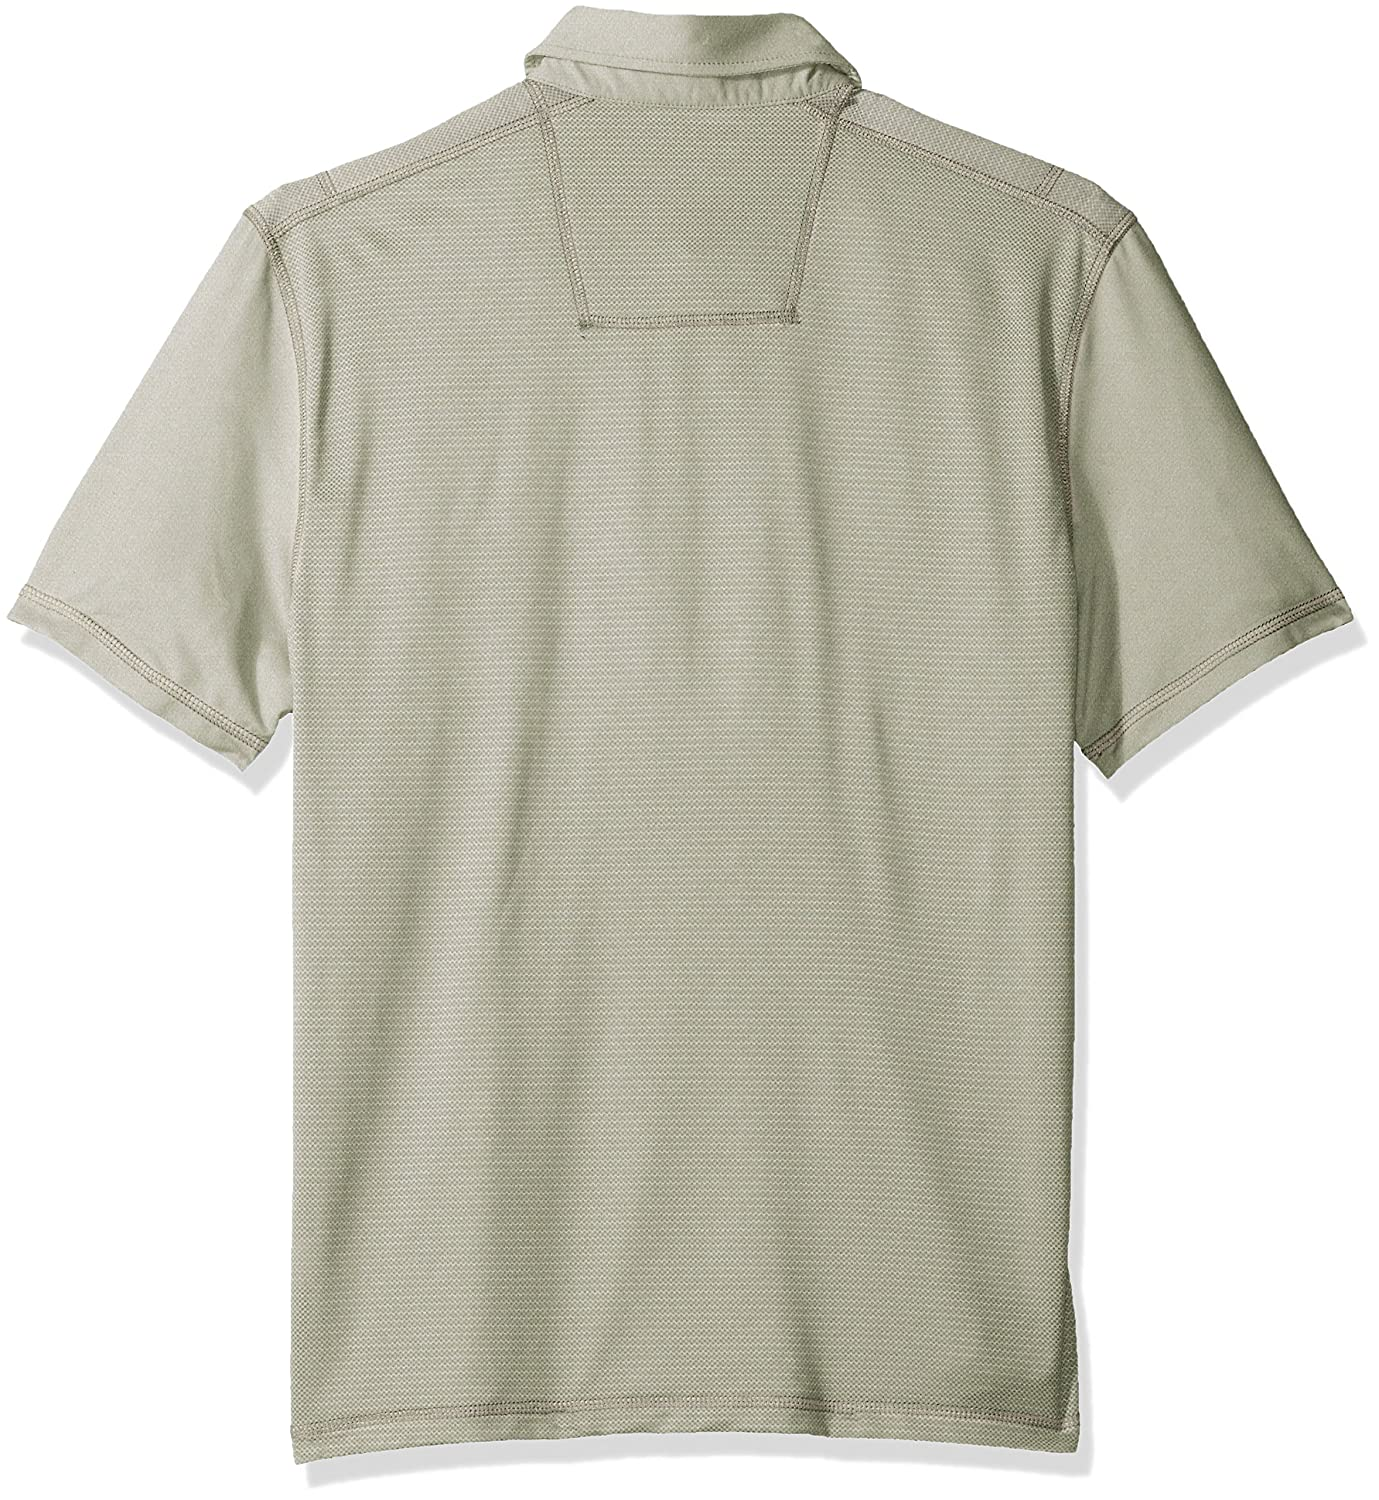 Bass /& Co Mens Explorer Textured Short Sleeve Polo Arrow Men/'s Tops 5273216 G.H